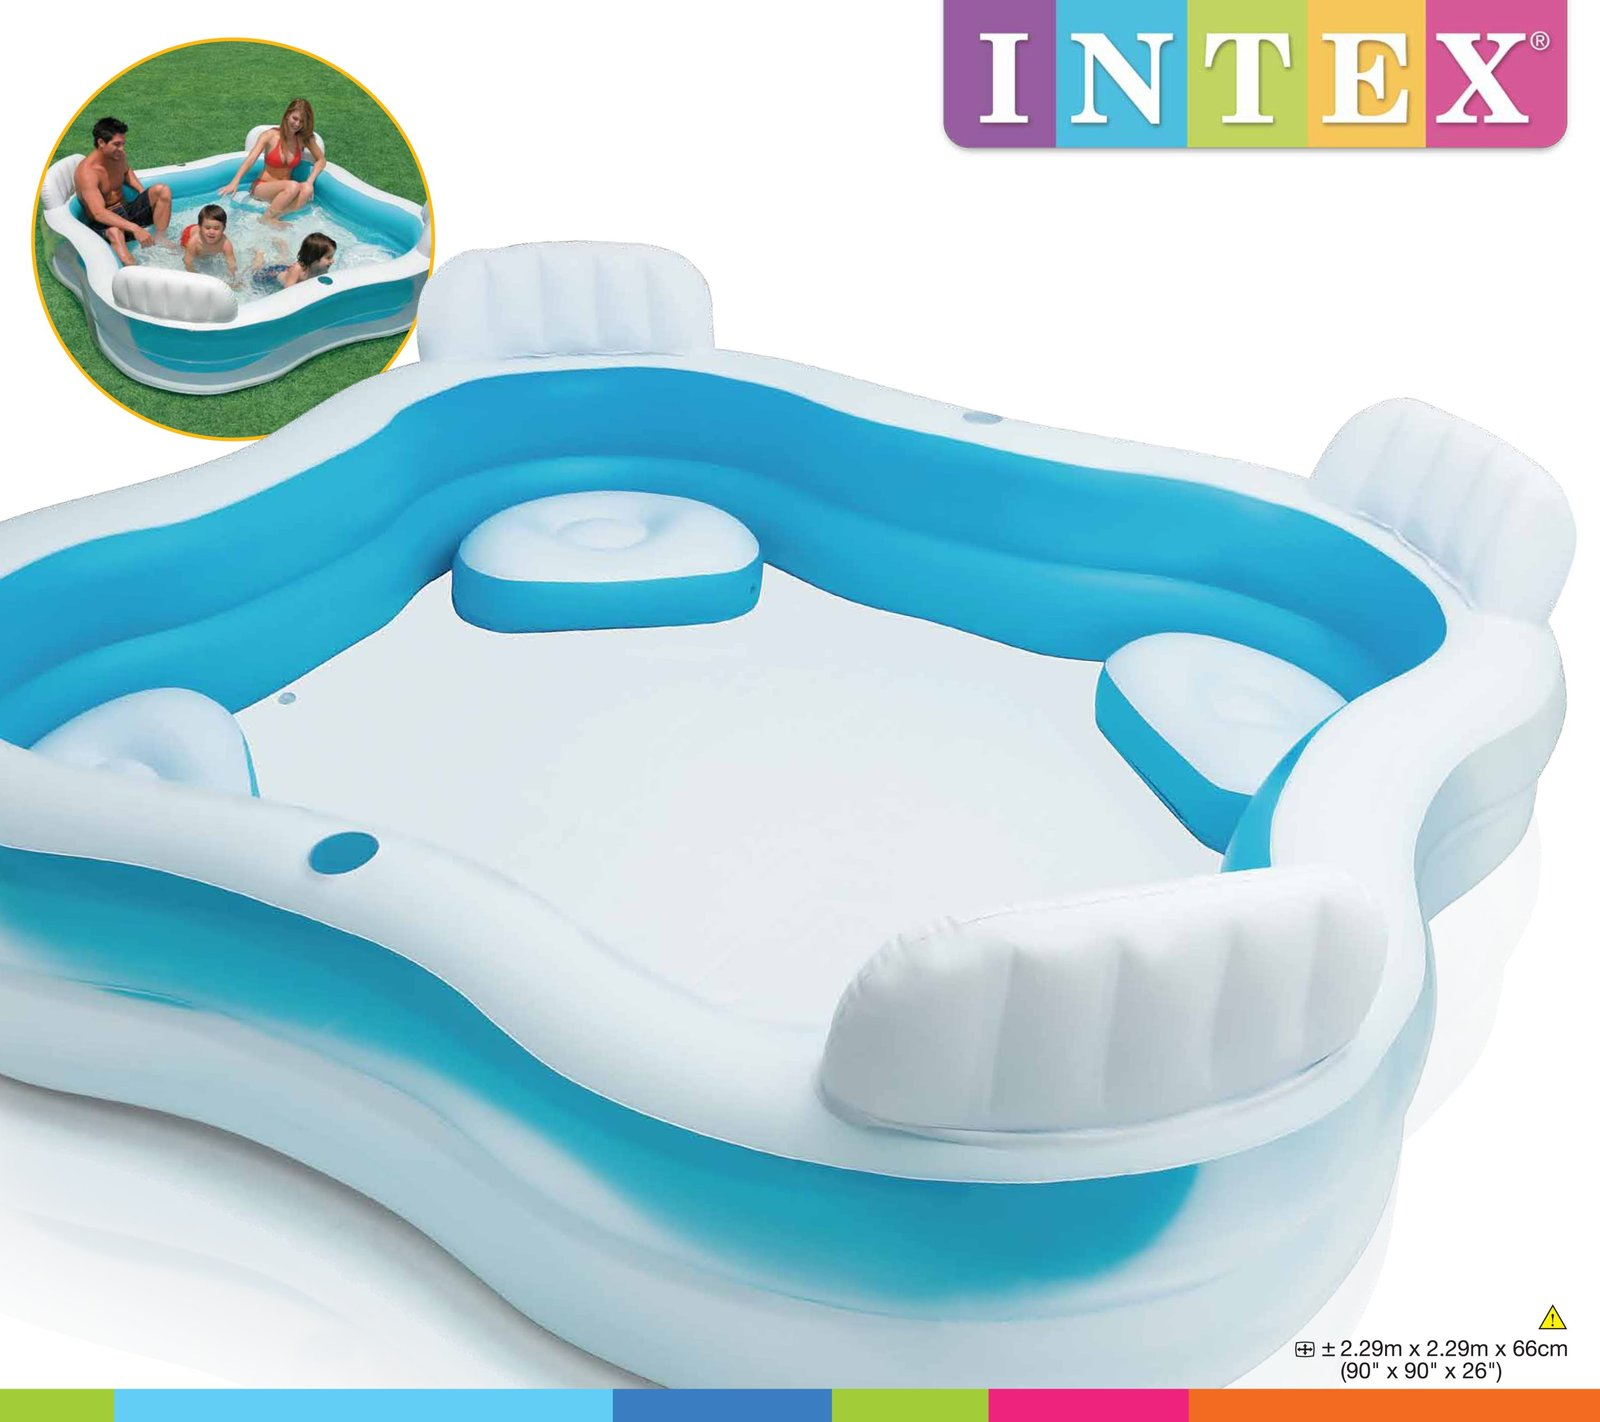 Intex Swim Center Family Lounge Inflatable Pool Toy At Mighty Ape Australia